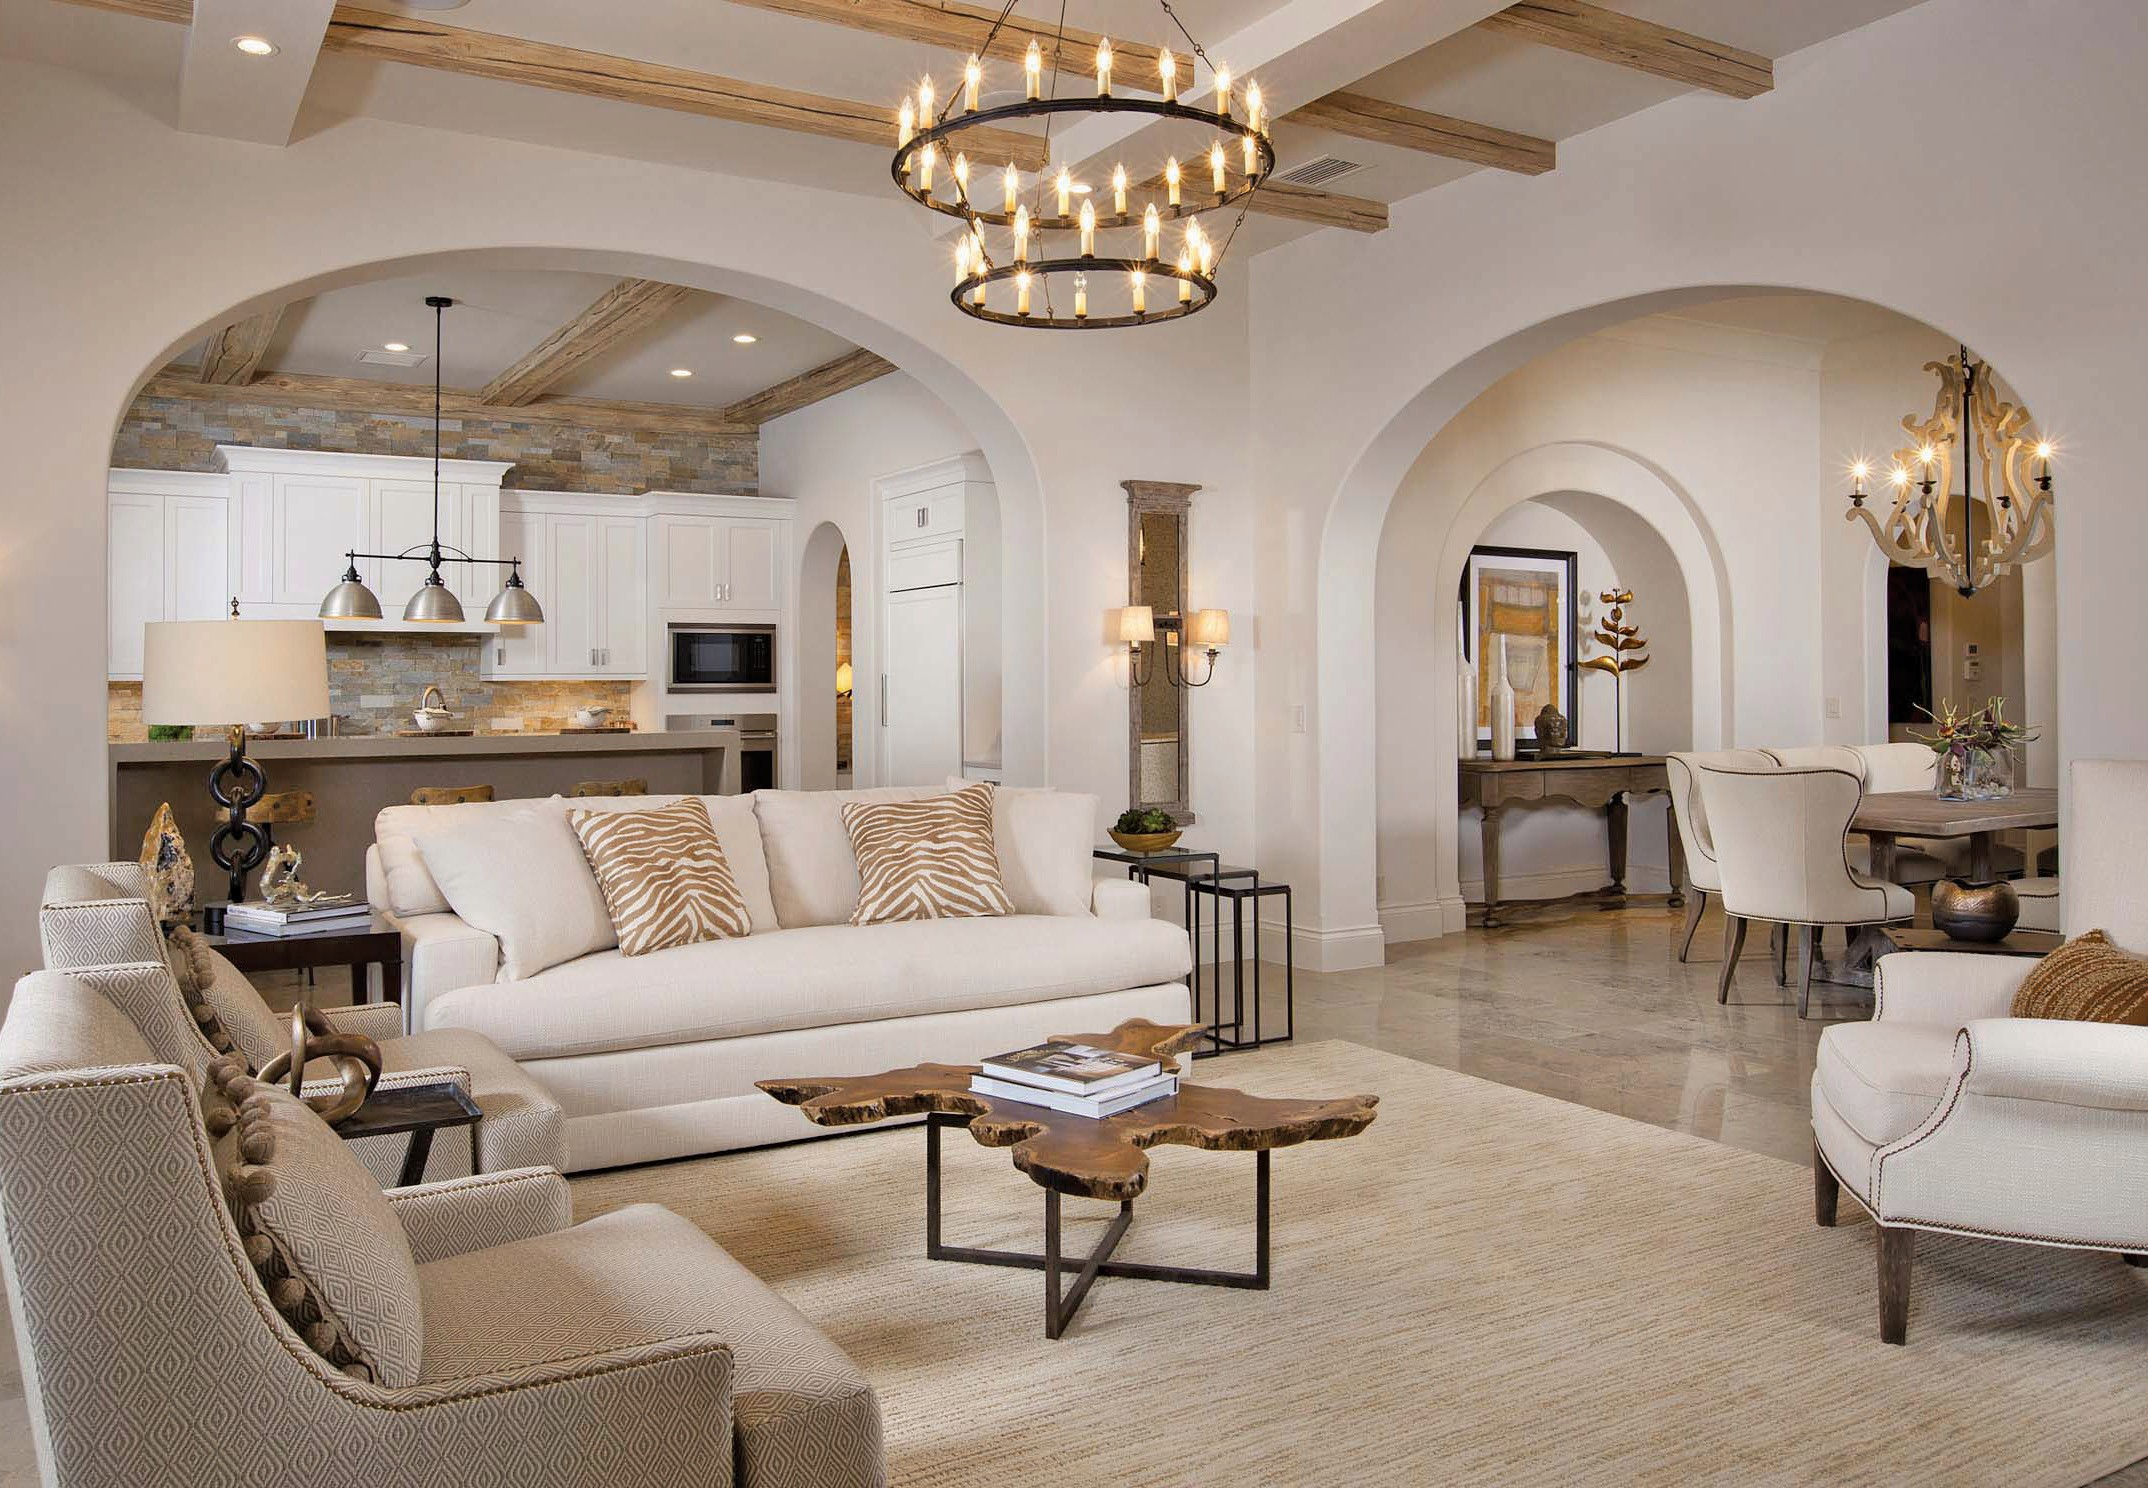 Above: Featuring Interiors By Romanza Interior Design, The Belita Showcases  Beamed Ceilings Throughout The